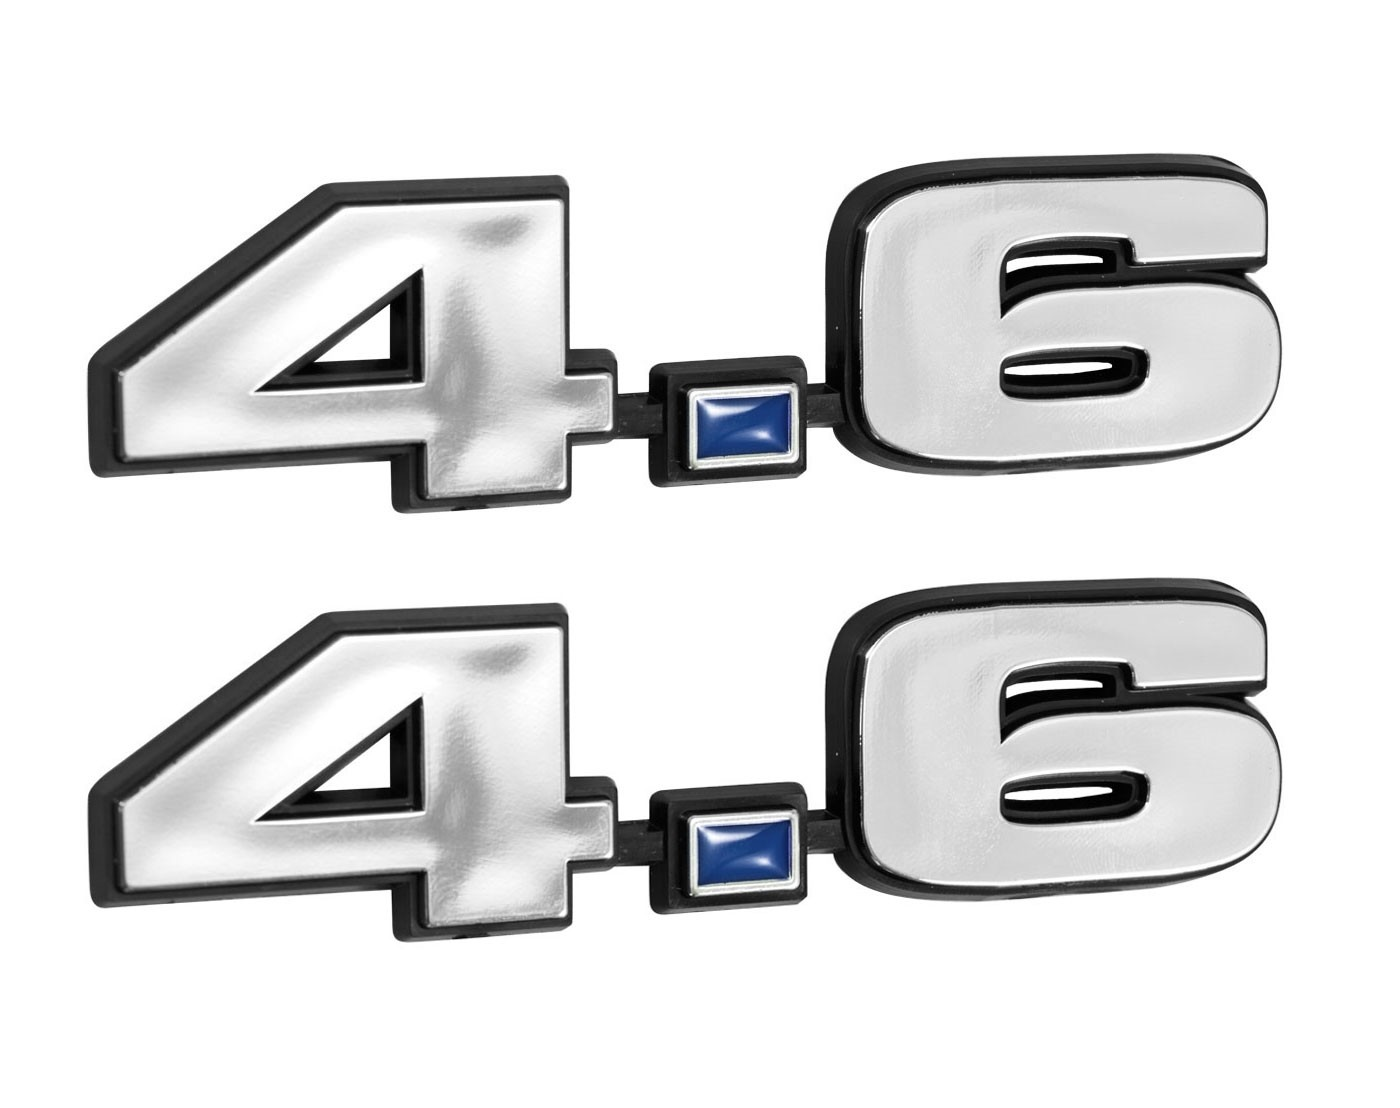 Ford Mustang 4.6 281 Engine Emblems Chrome & Blue 4.75 x 1.25 - Pair